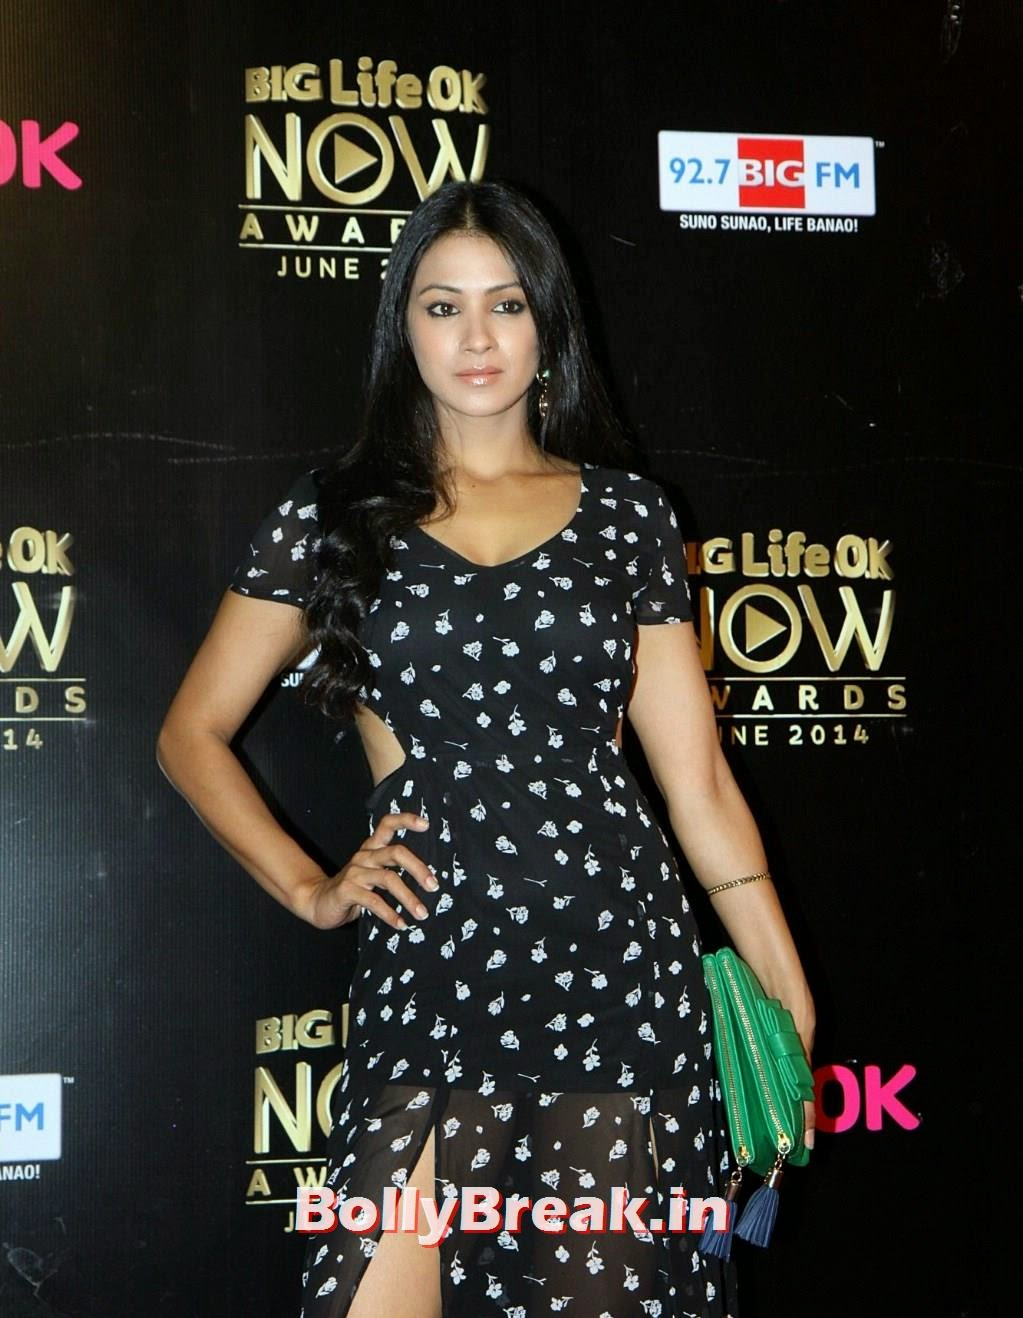 Barkha Bisht in transparent black dress at Life Ok Now Awards 2014, Barkha Bisht Latest Hot HD Pics from Life Ok Now Awards 2014